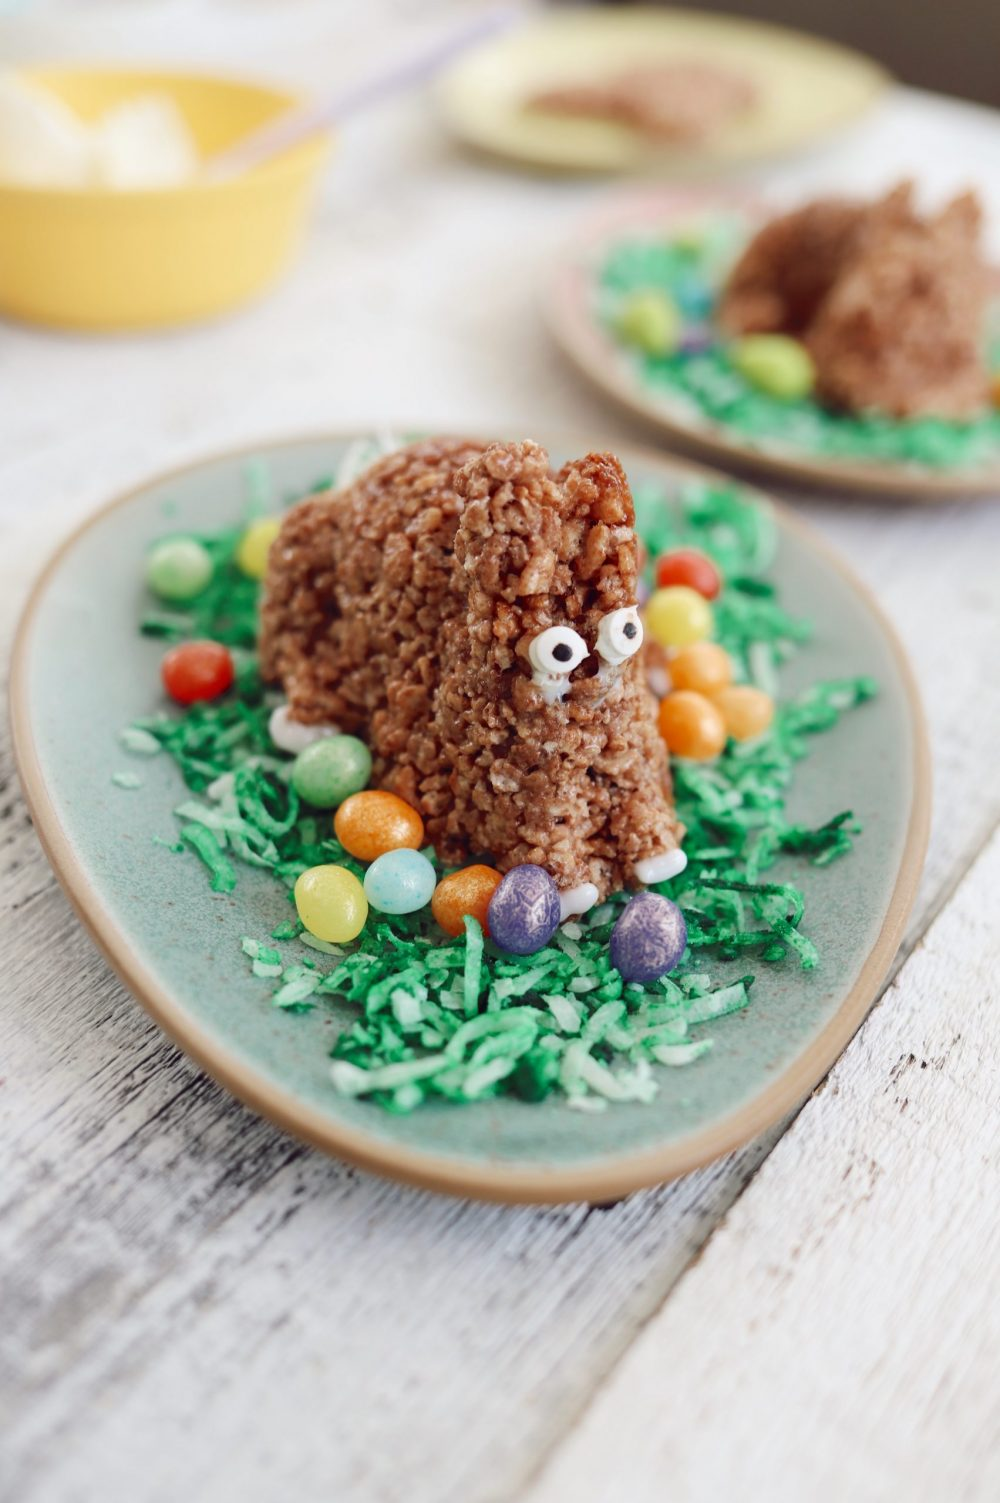 Simple Chocolate Easter Bunny Rice Krispies treats from top lifestyle blogger Tabitha Blue of Fresh Mommy Blog |Chocolate Rice Krispies Treats by popular Florida lifestyle blog, Fresh Mommy Blog: image of Easter Bunny shaped chocolate Rice Krispies treats,  a bowl of white frosting, pastel sprinkles, and white ceramic bowls filled with egg shaped jelly beans.